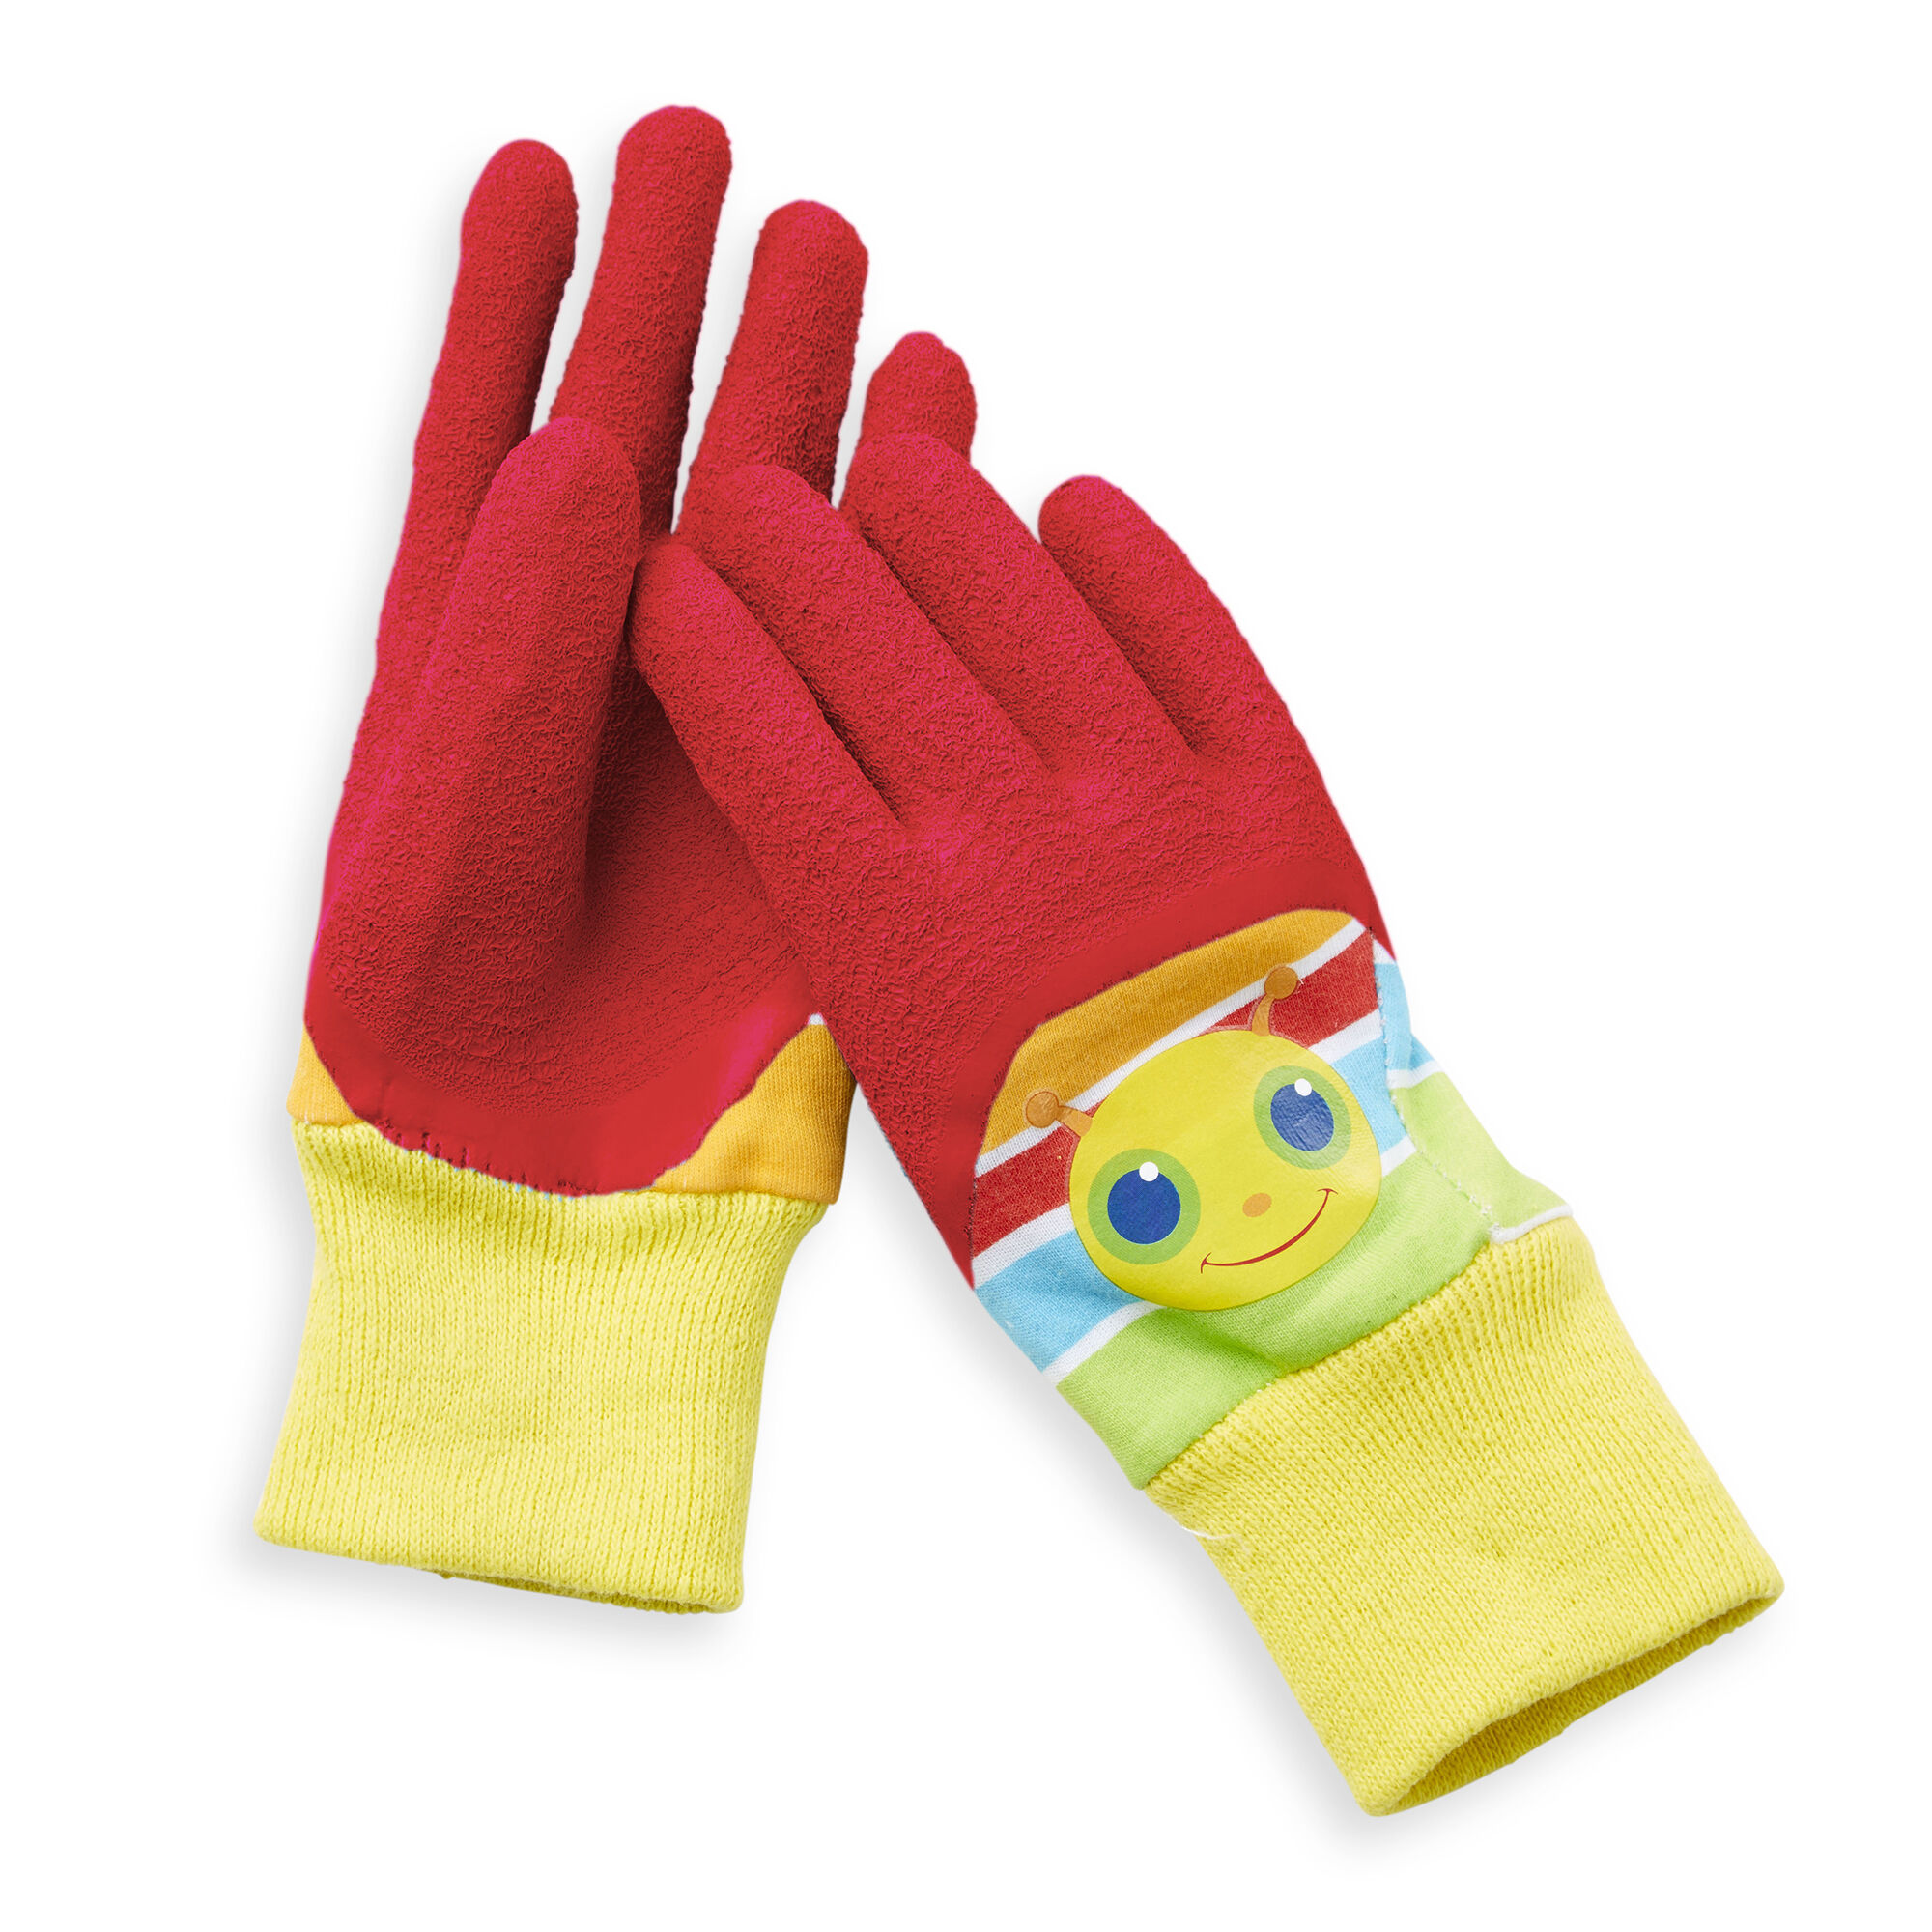 mickey mouse Disney Childrens Garden tools and gloves Age 4yrs+